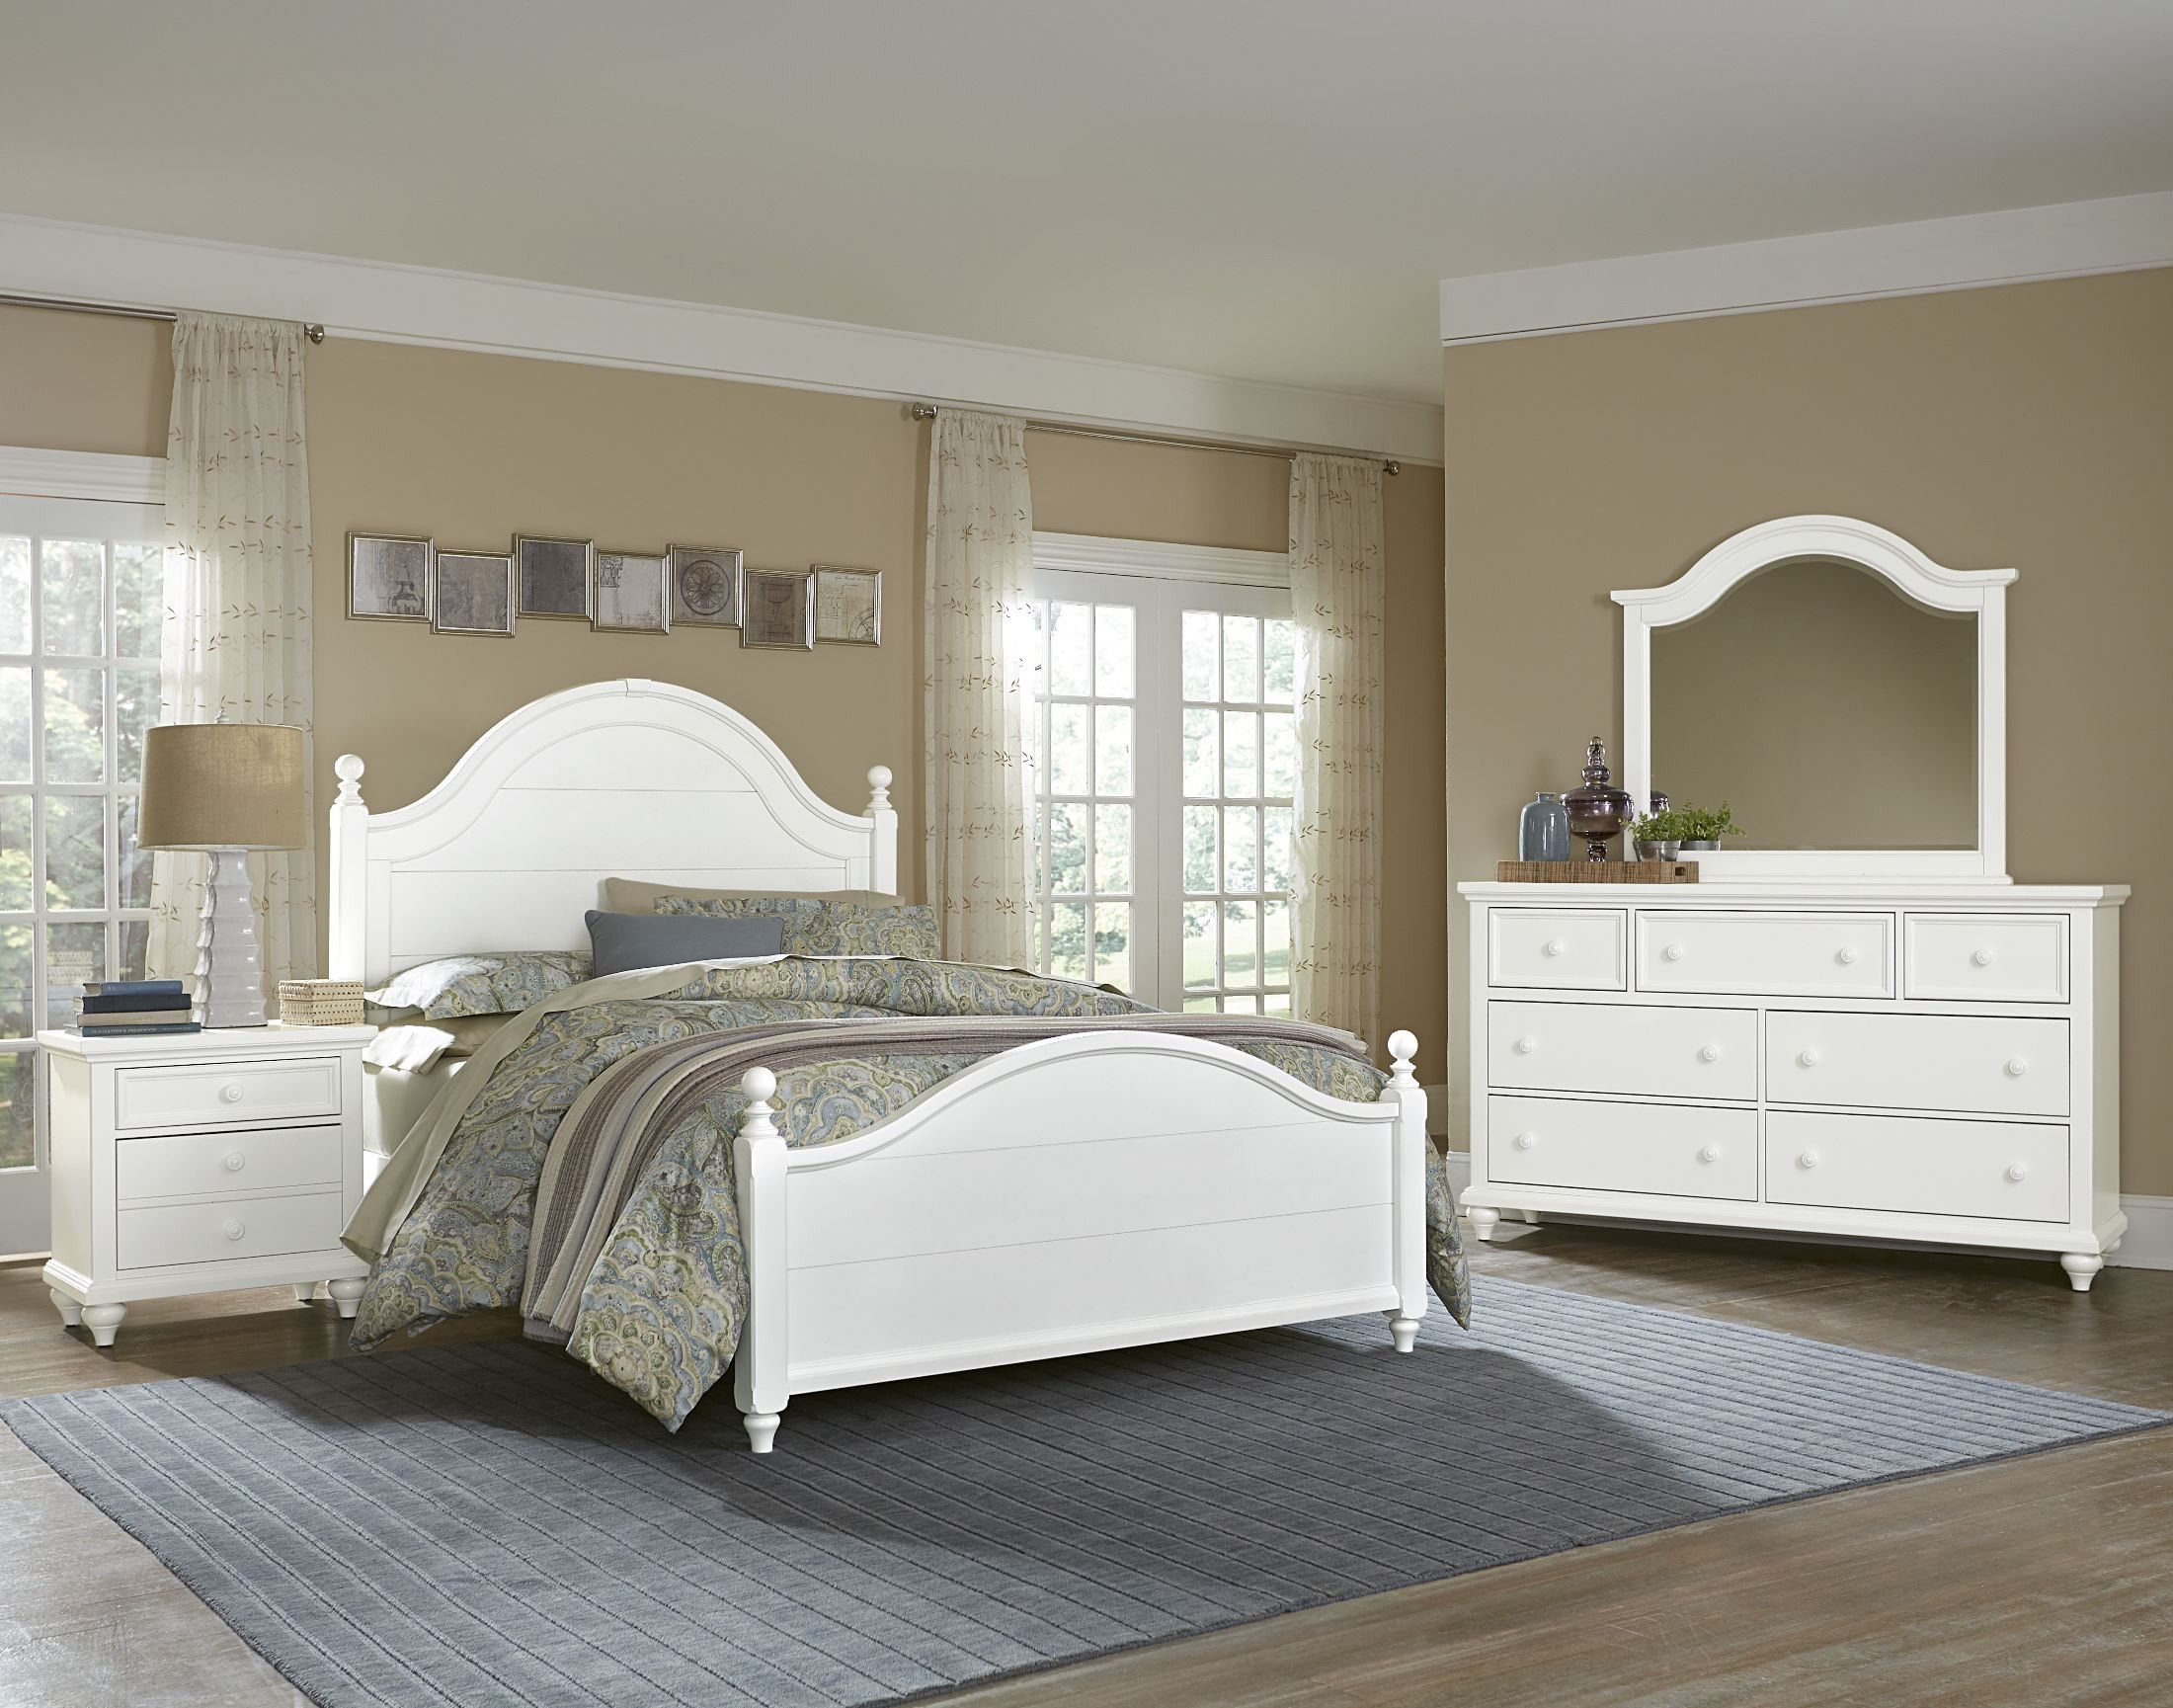 Nantucket Soft White Poster Bedroom Set (With images